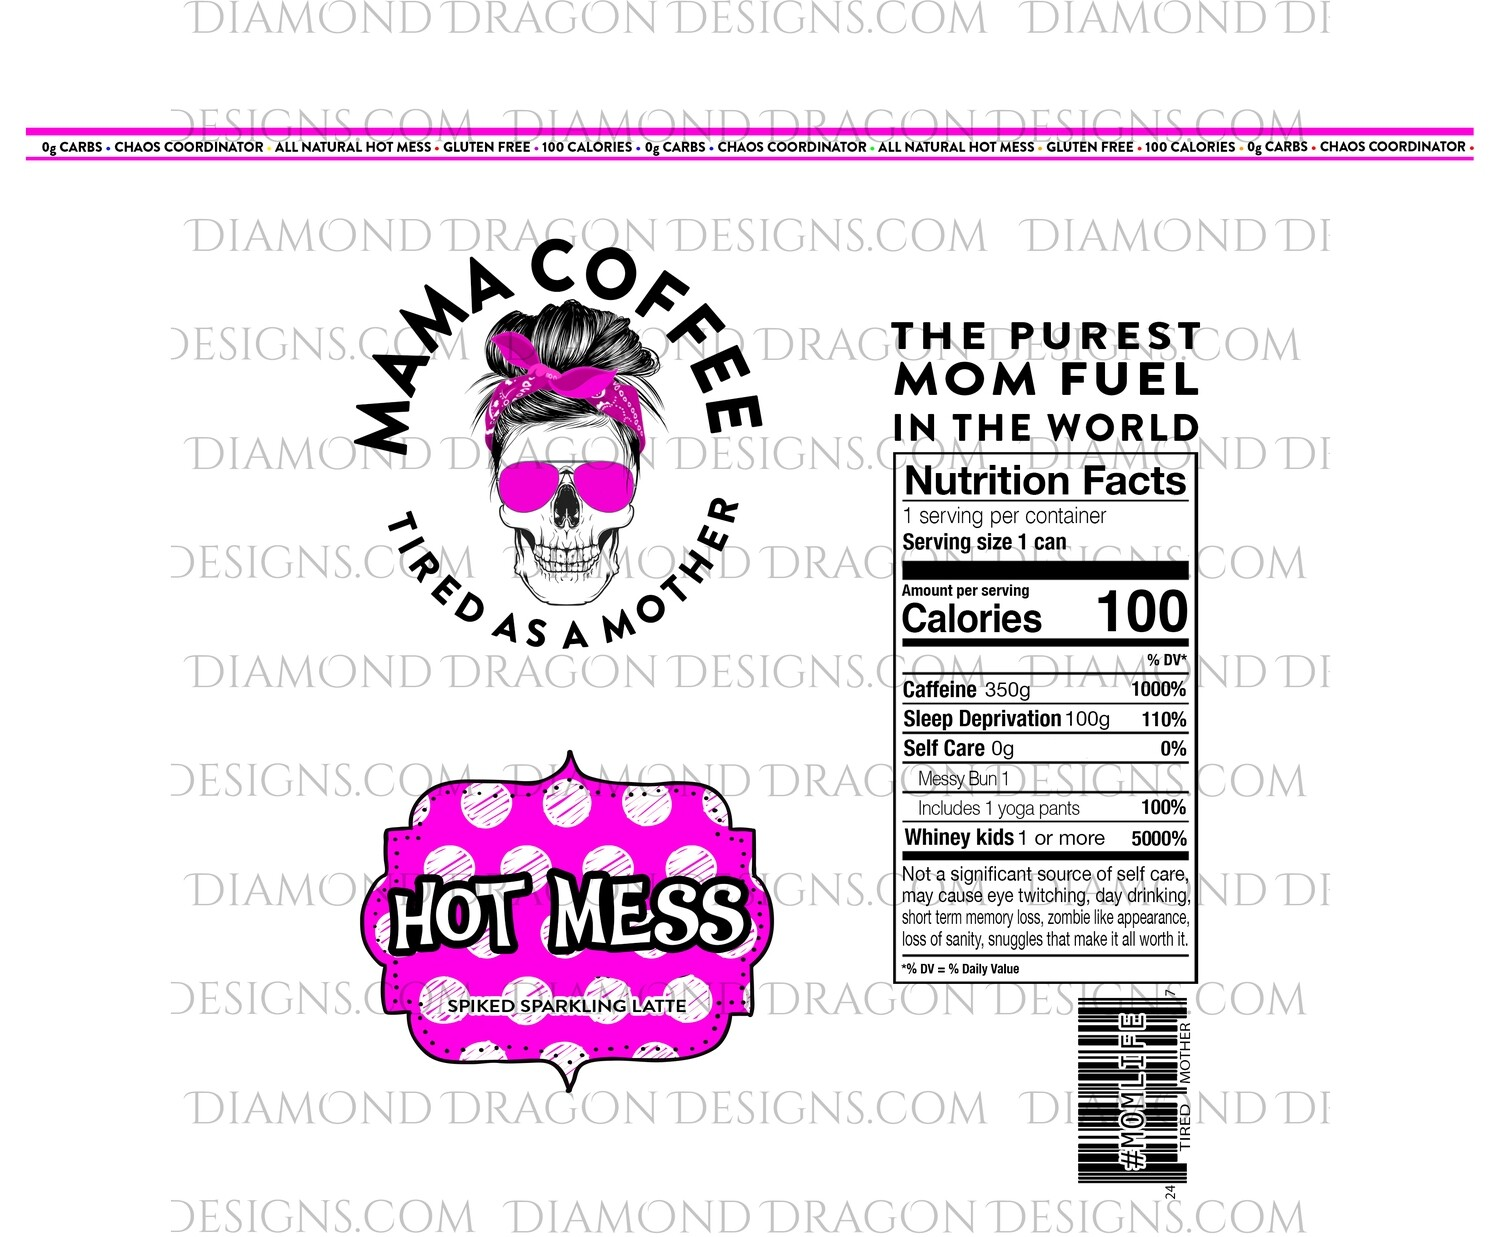 Drinks - Mama Coffee, Hot Pink, Hot Mess, Spiked Sparkling Latte, Digital Image